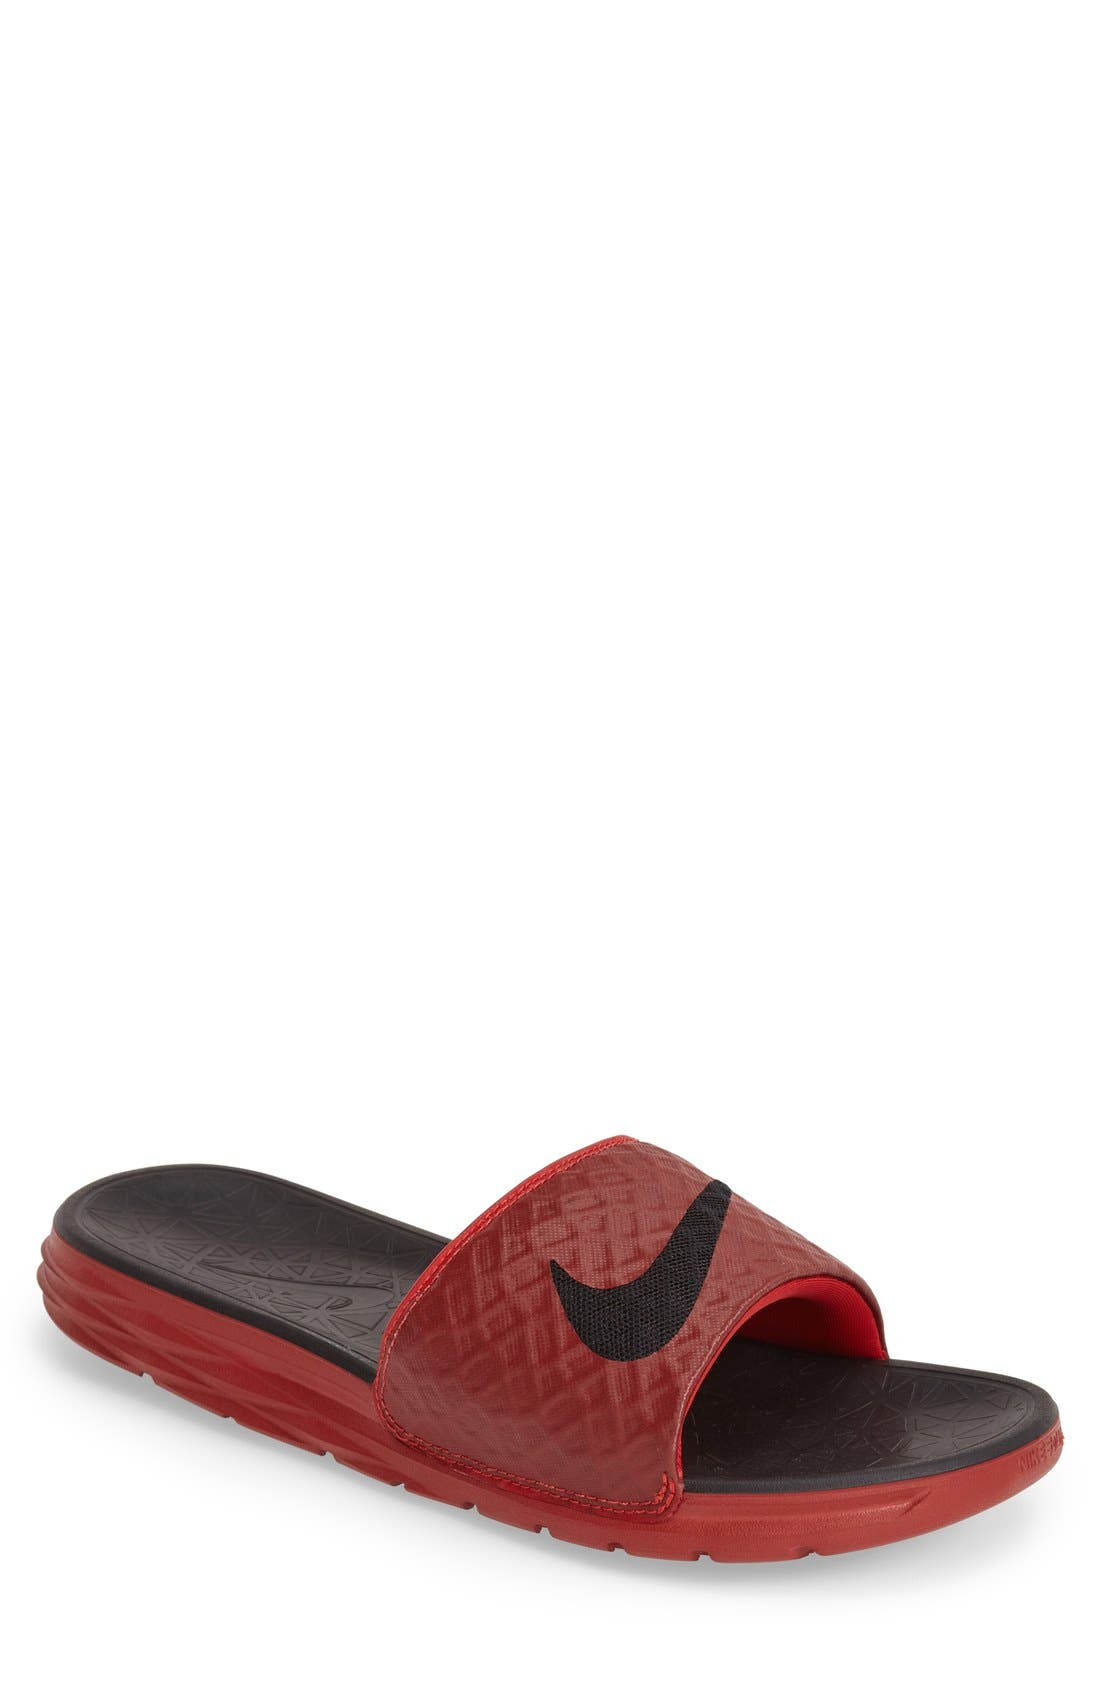 'Benassi Solarsoft 2' Slide Sandal,                             Main thumbnail 1, color,                             University Red/ Black